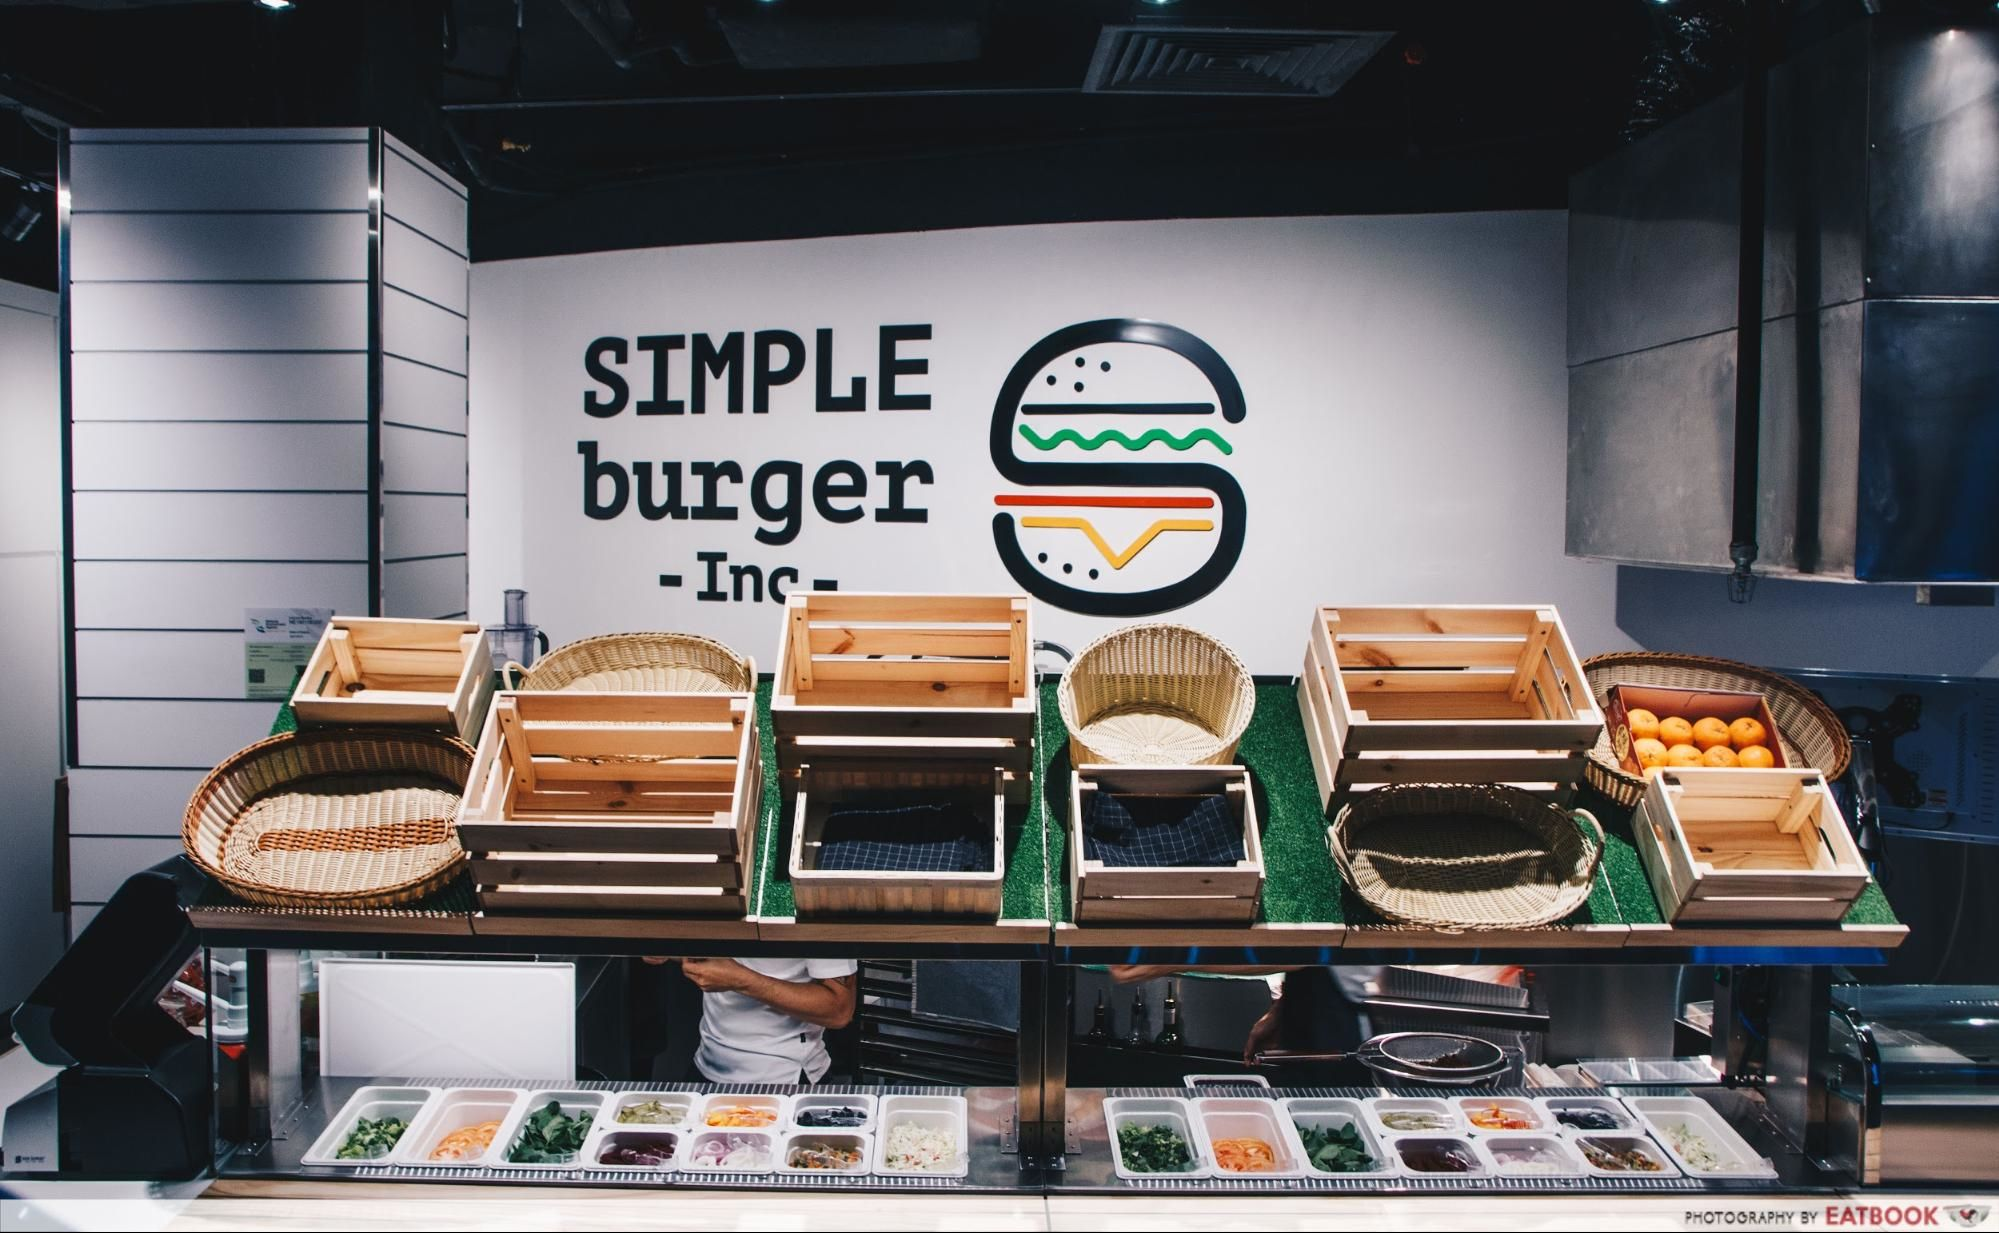 New Restaurants Mar 2018 - SimpleBurger Inc